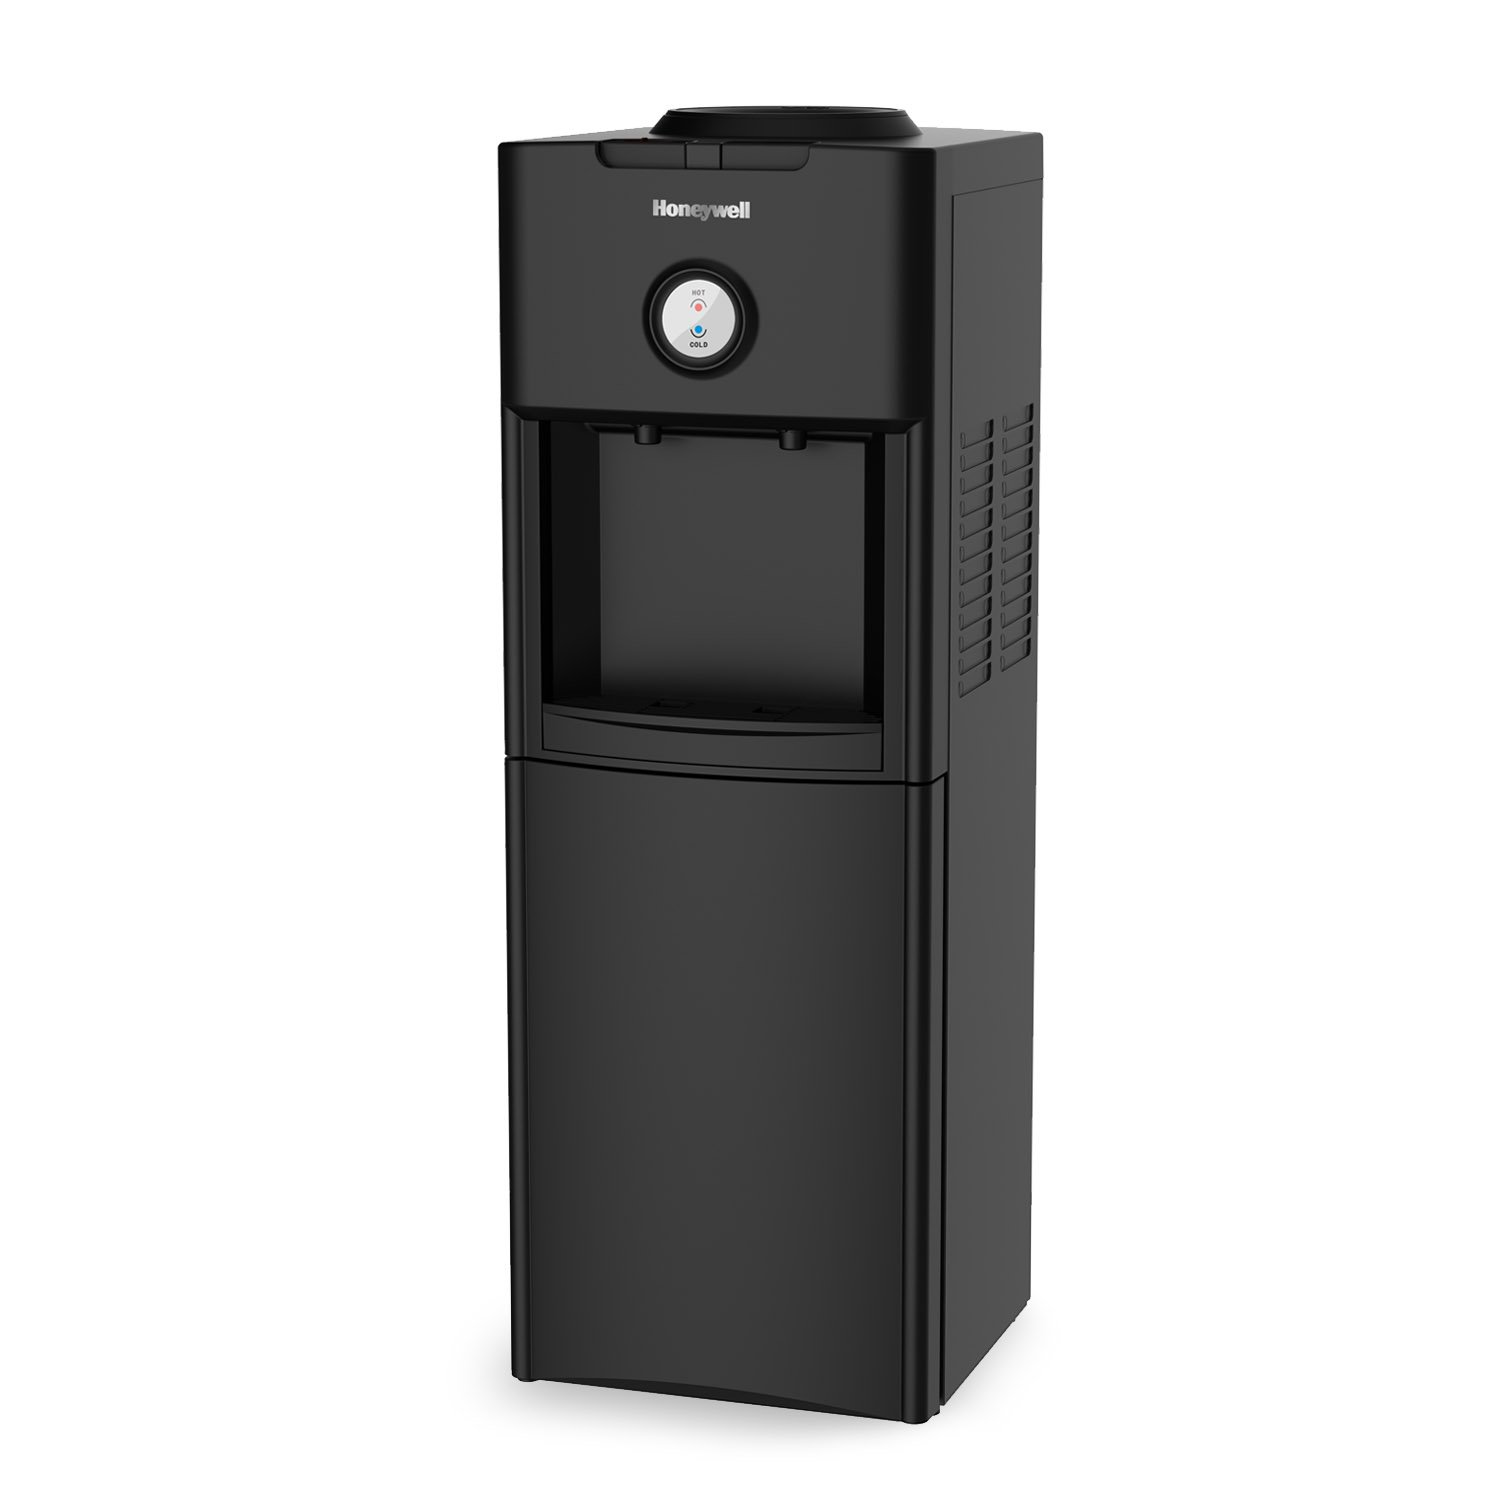 Honeywell Antibacterial Chemical-Free Technology, Hot and Cold Water Dispenser, Stainless Steel Tank, Adjustable Thermostat, Black by Honeywell